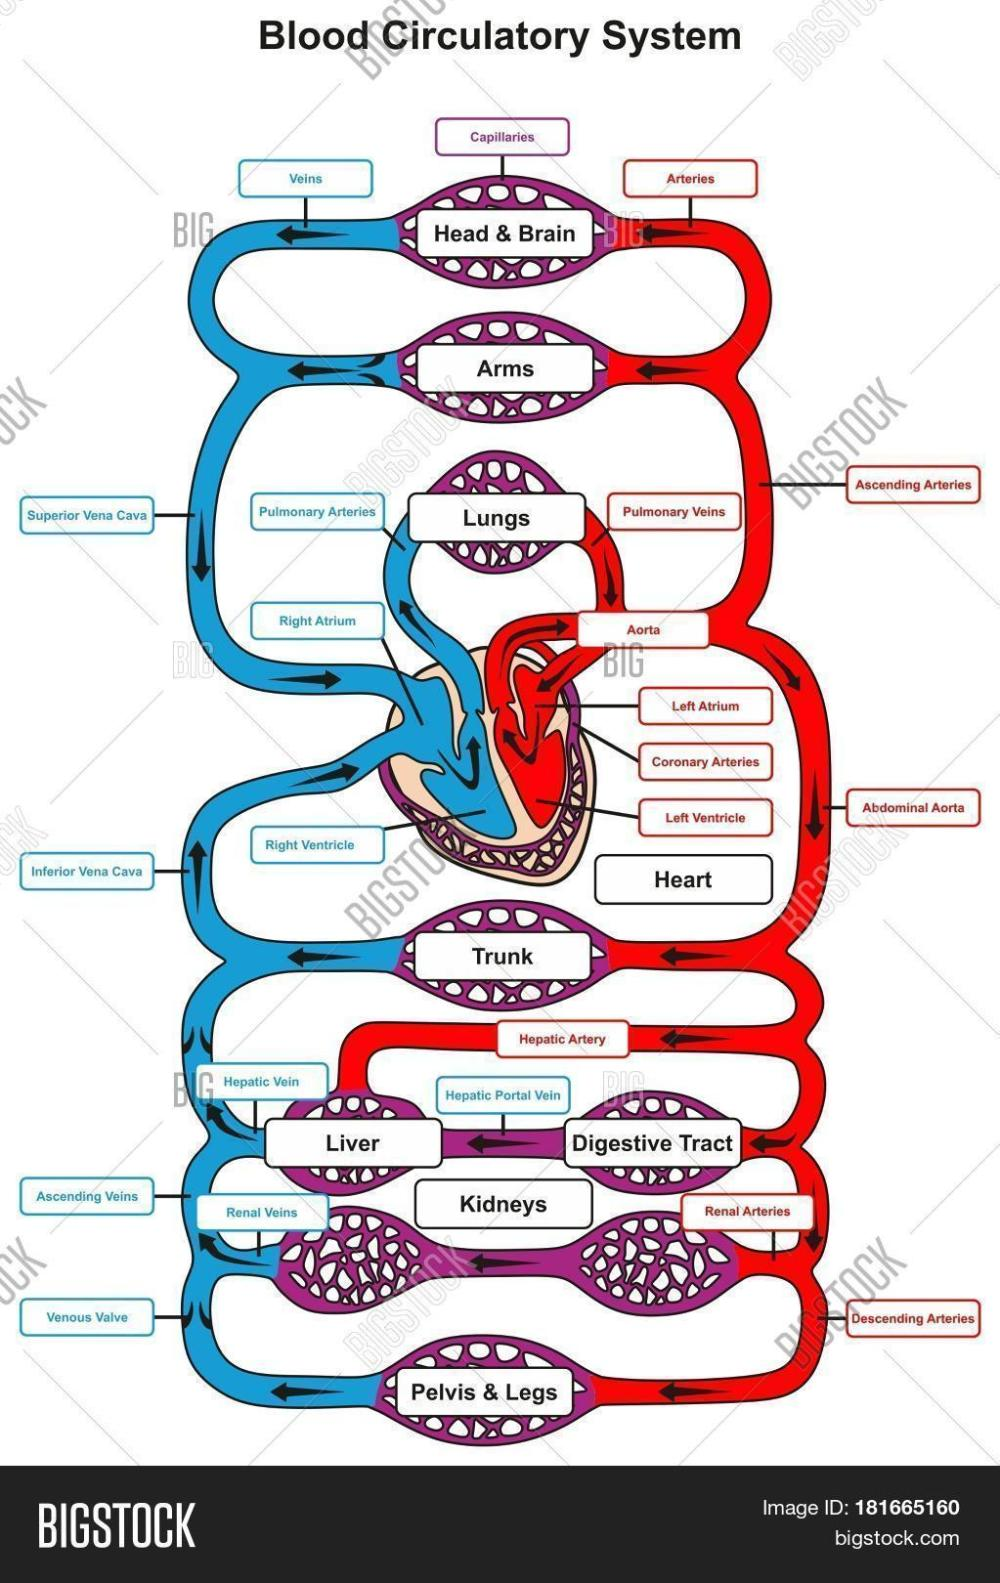 medium resolution of blood circulatory system of human body infographic diagram with heart pumping to all other organs and